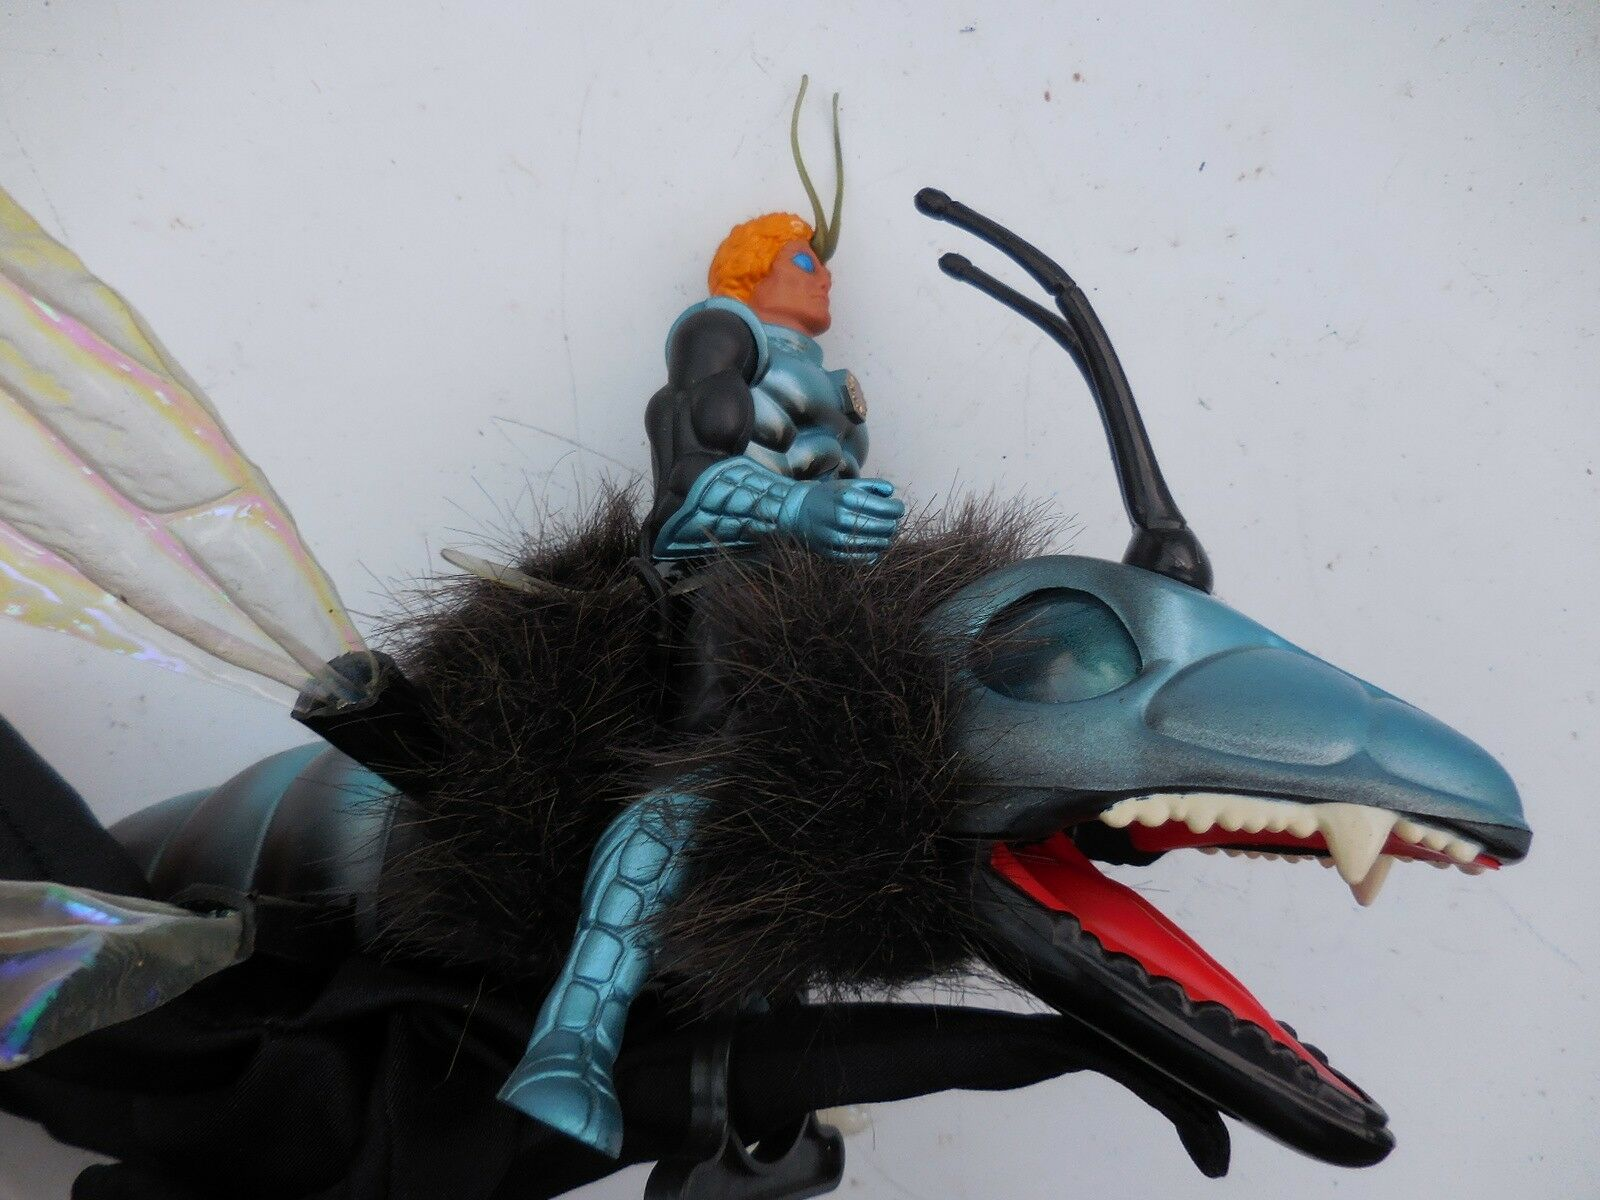 Sectaurs Dargon Dragonflyer Action Figure ( for part or repair) as is